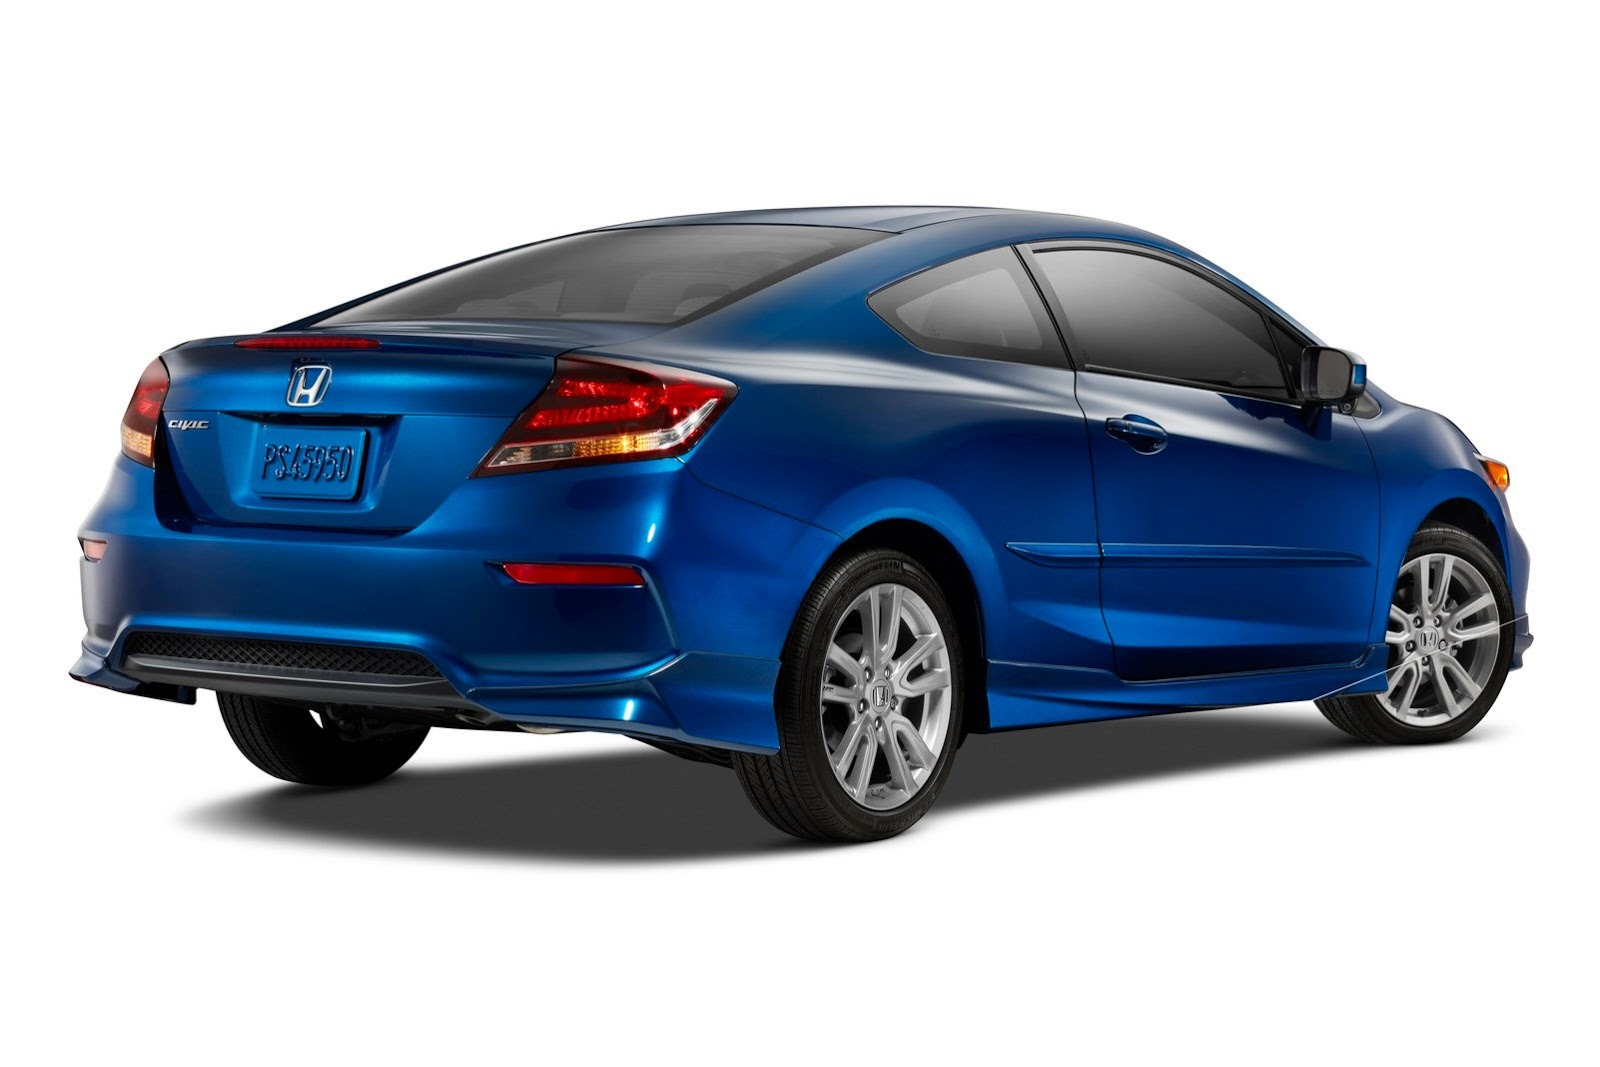 civic honda coupe si ex announced pricing goes door rear autoevolution specs motortrend models motor cars front manual